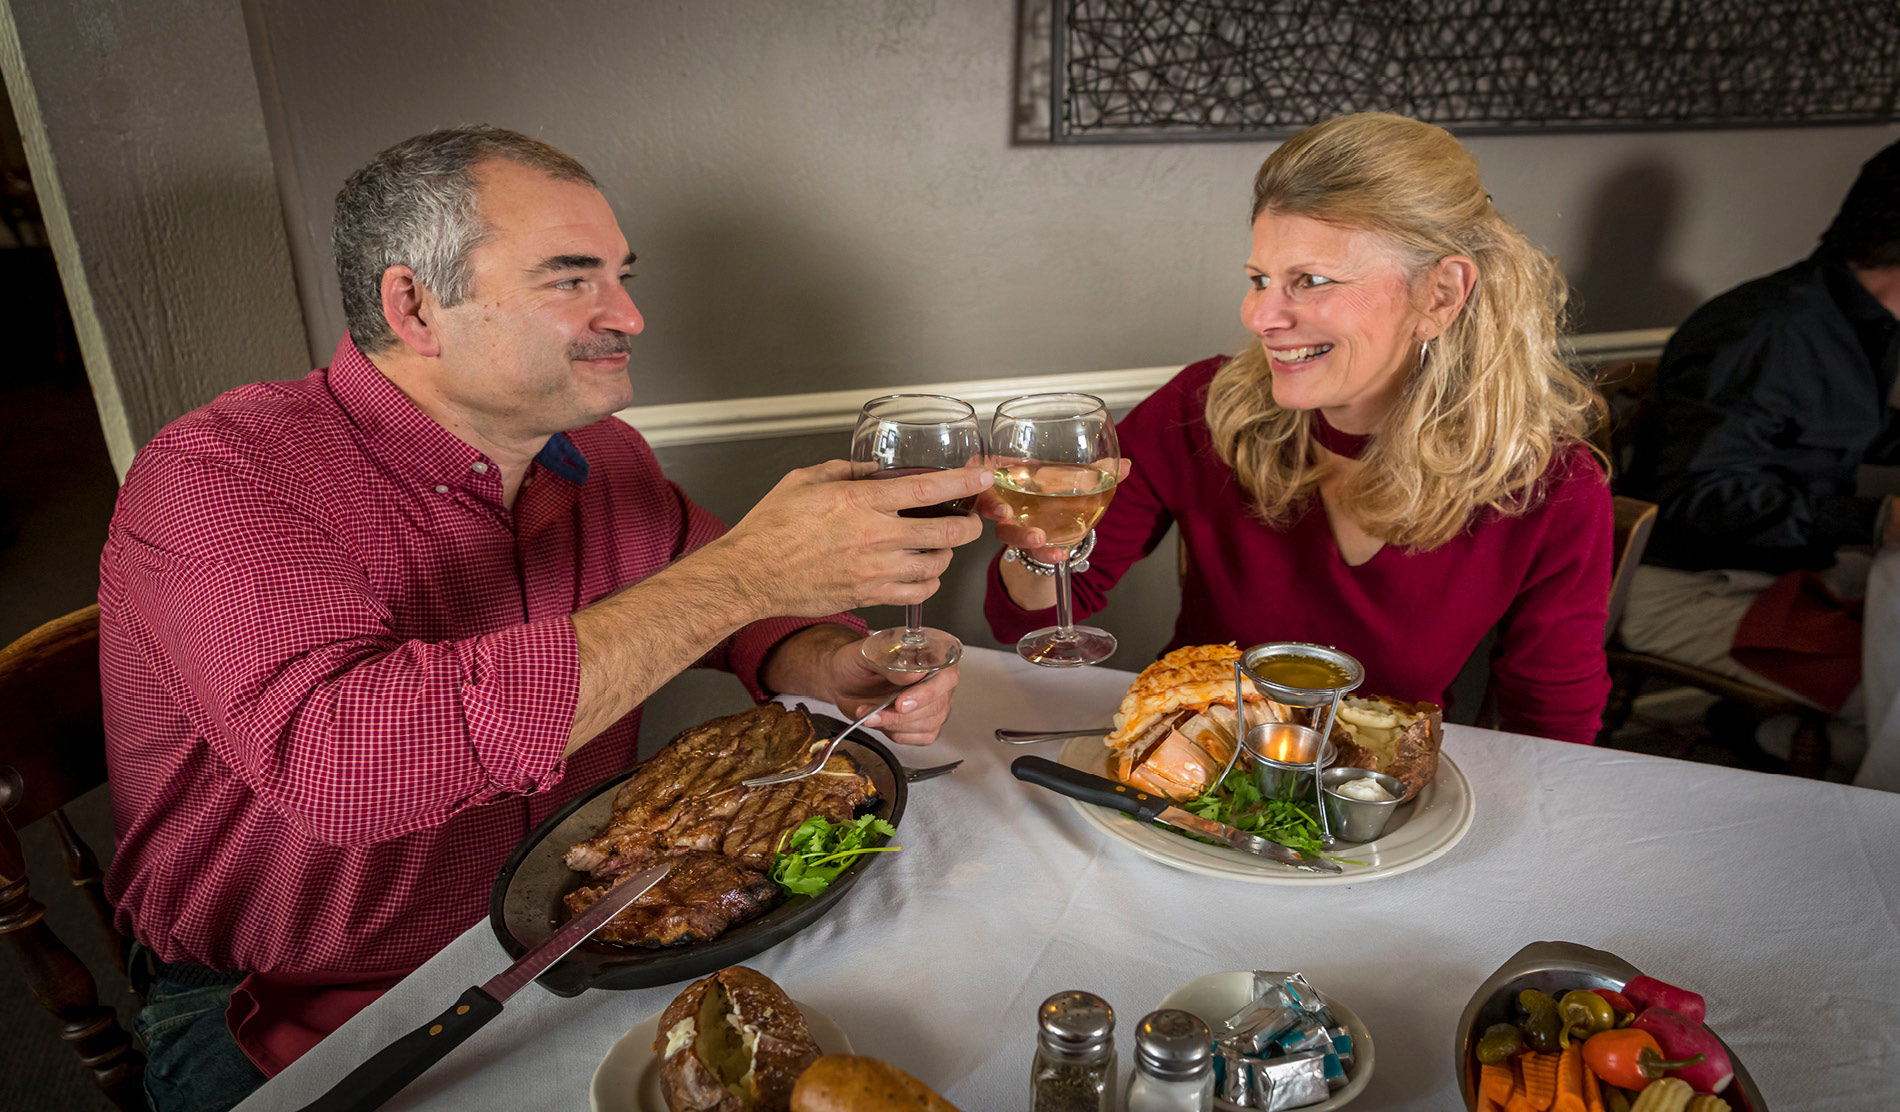 Man and woman cheersing while eating dinner.